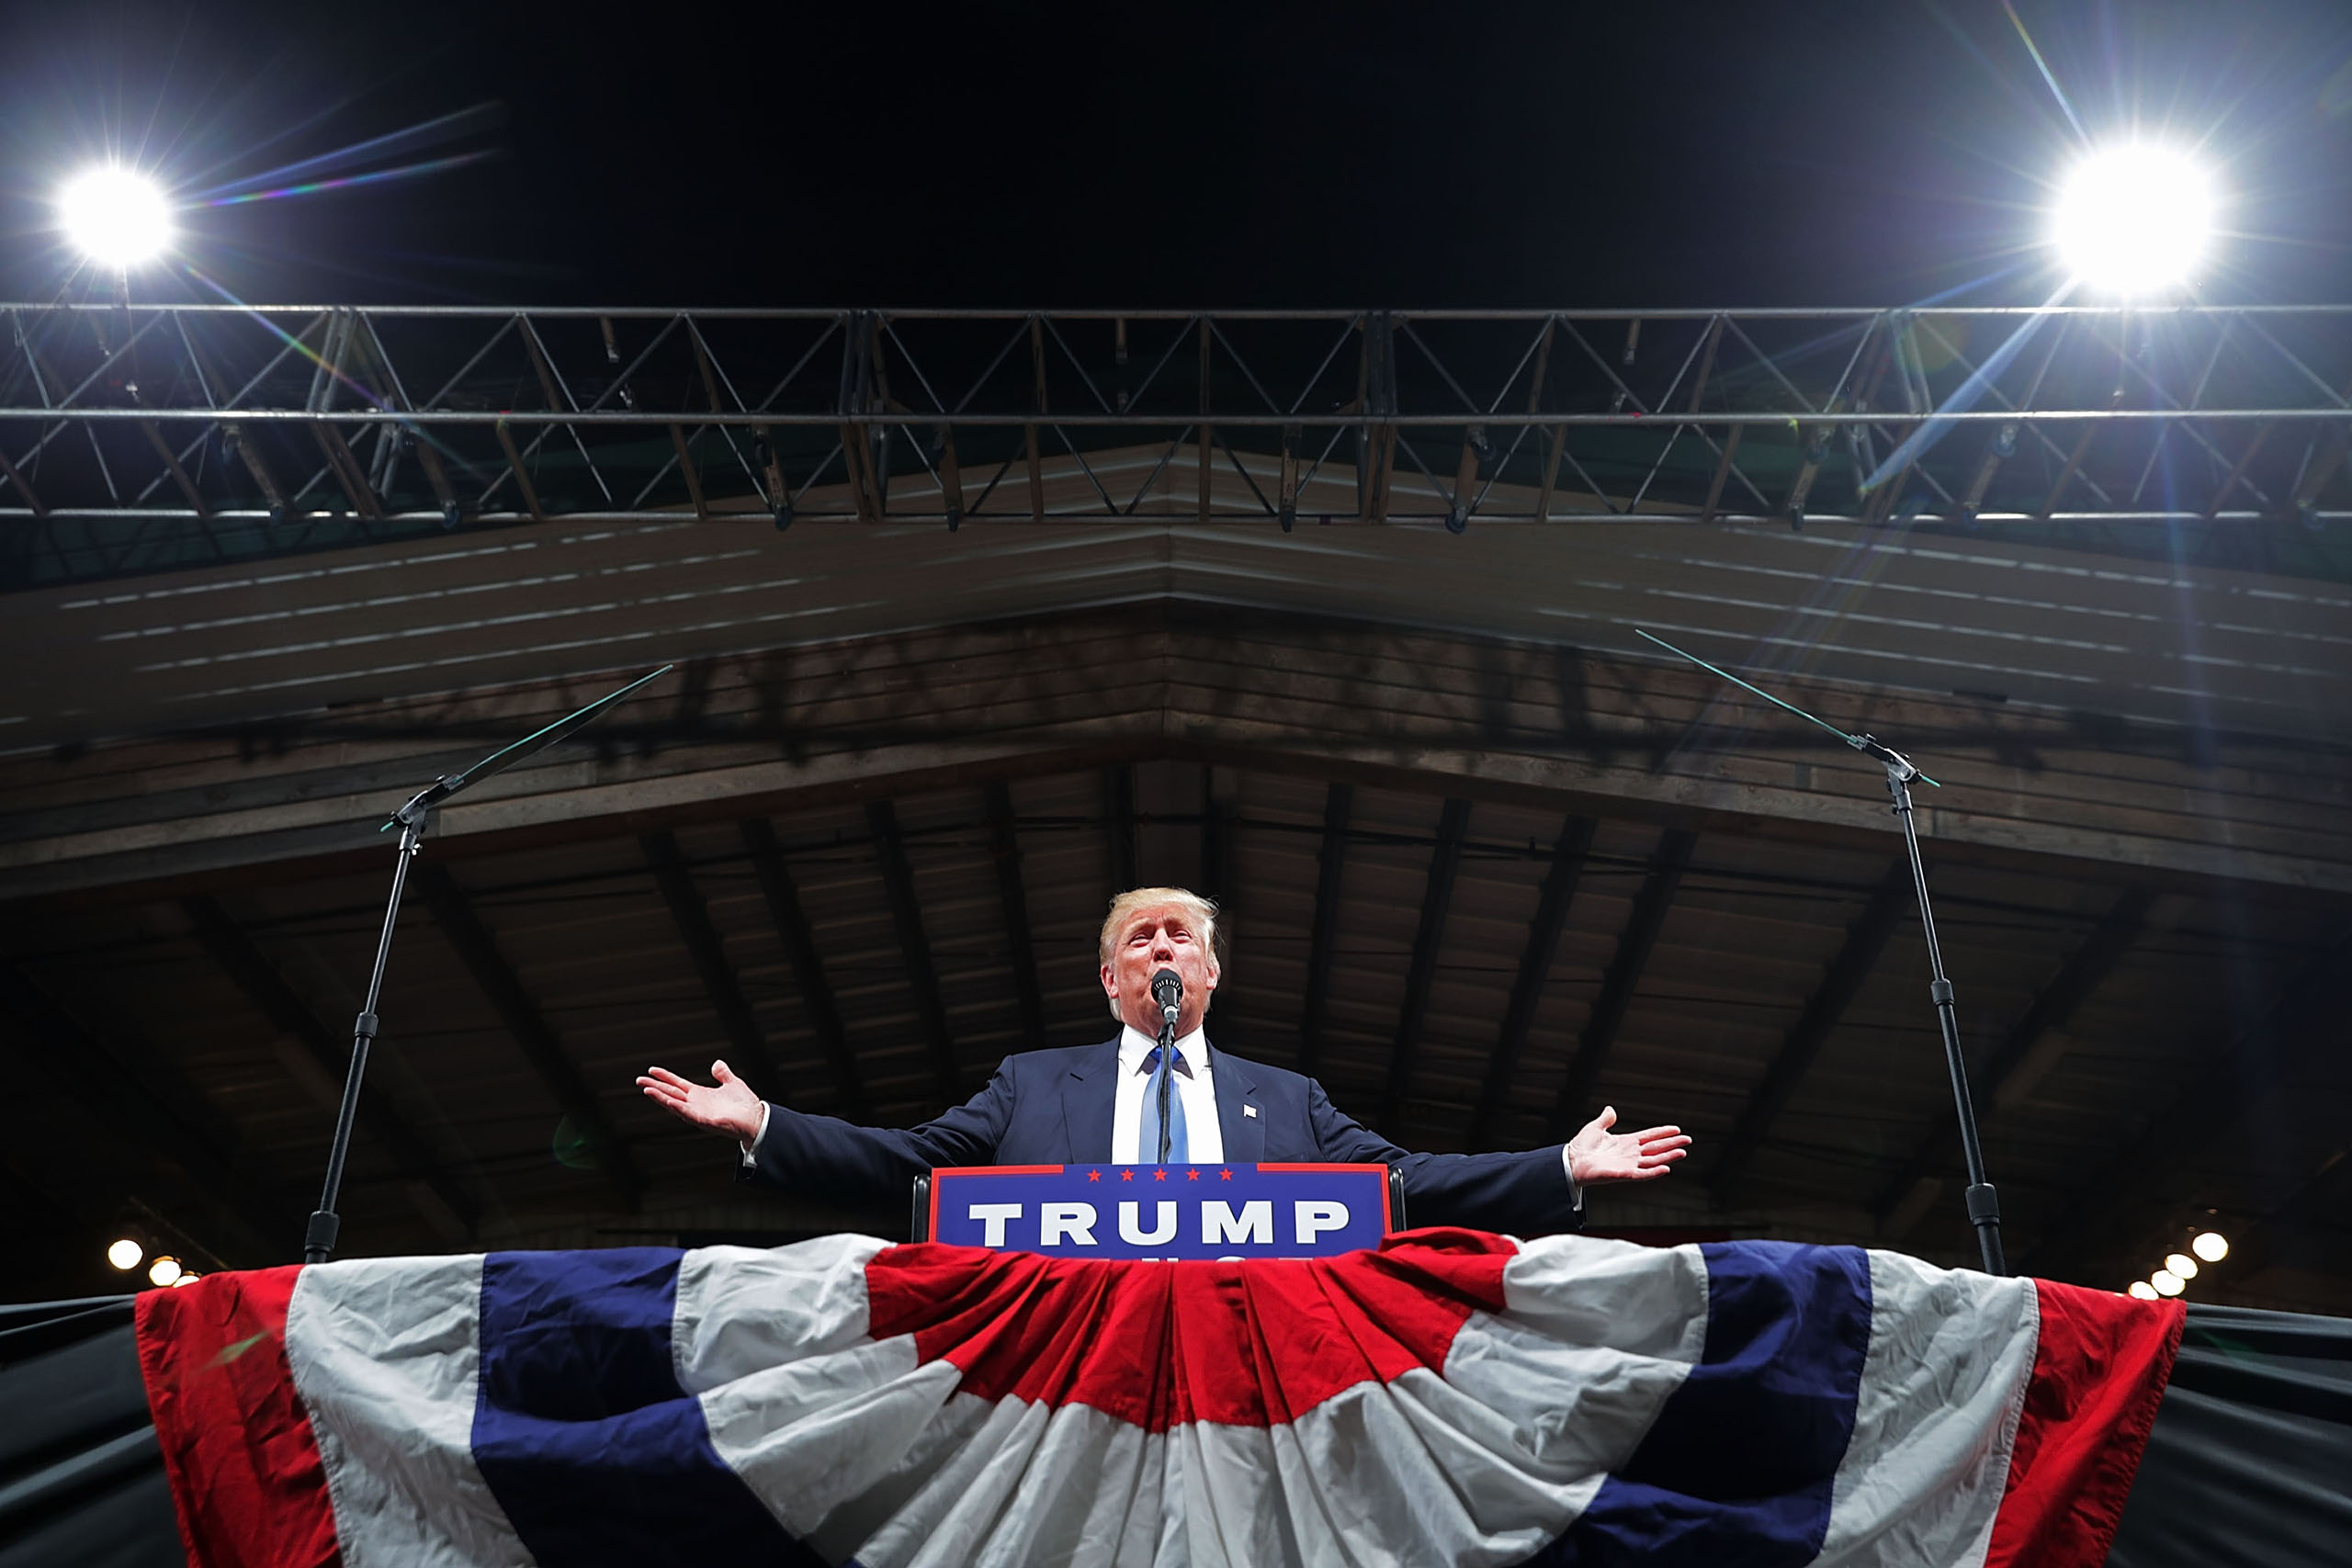 Donald Trump addresses a campaign rally at The Farm on November 3, 2016 in Selma, North Carolina.